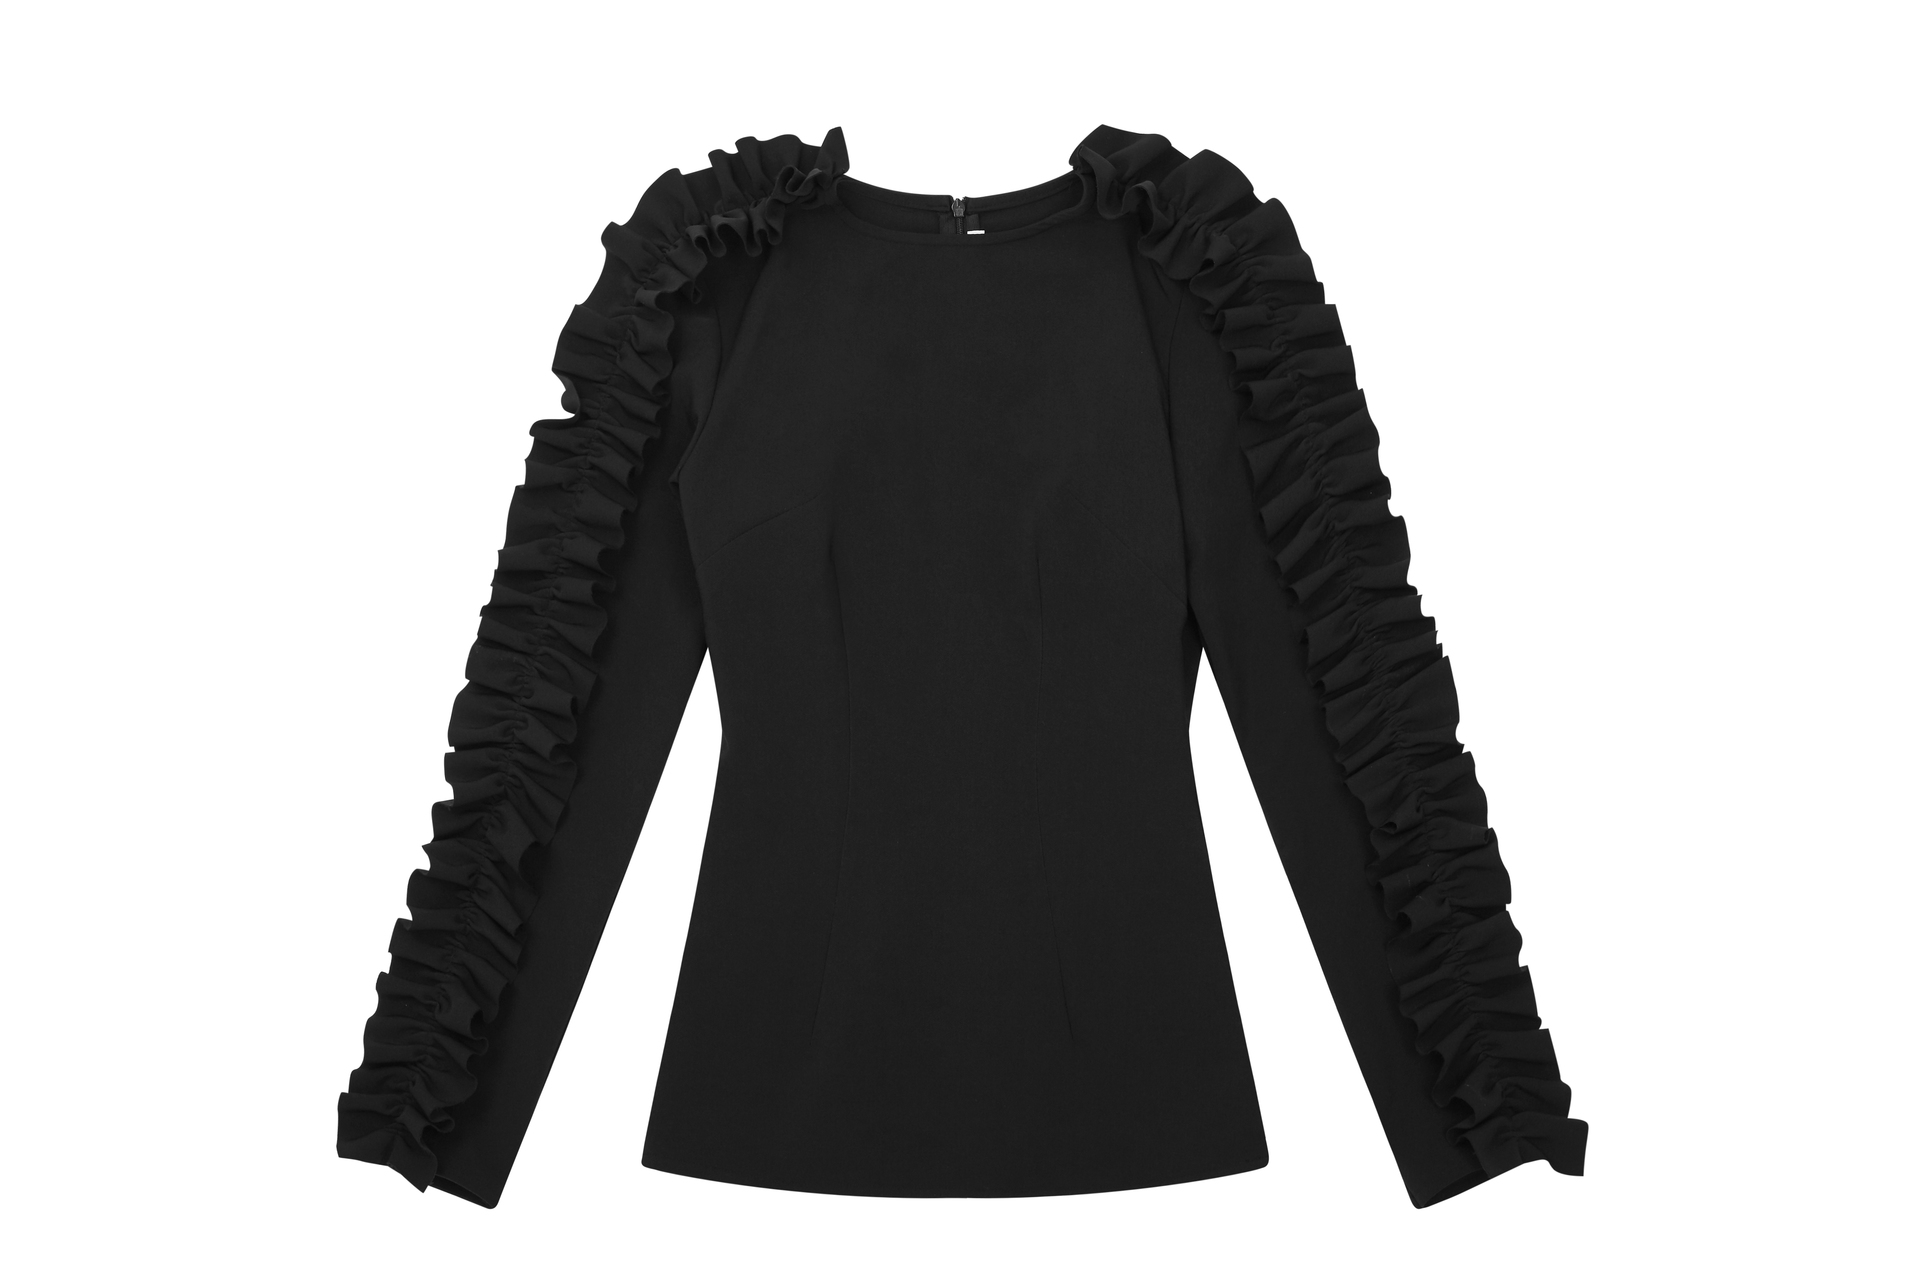 72dpi-239146ea43-57.-BY-JOHNNY,-Ruffle-Down-Sleeve-Top-Black,-280,-www.byjohnny.com.au